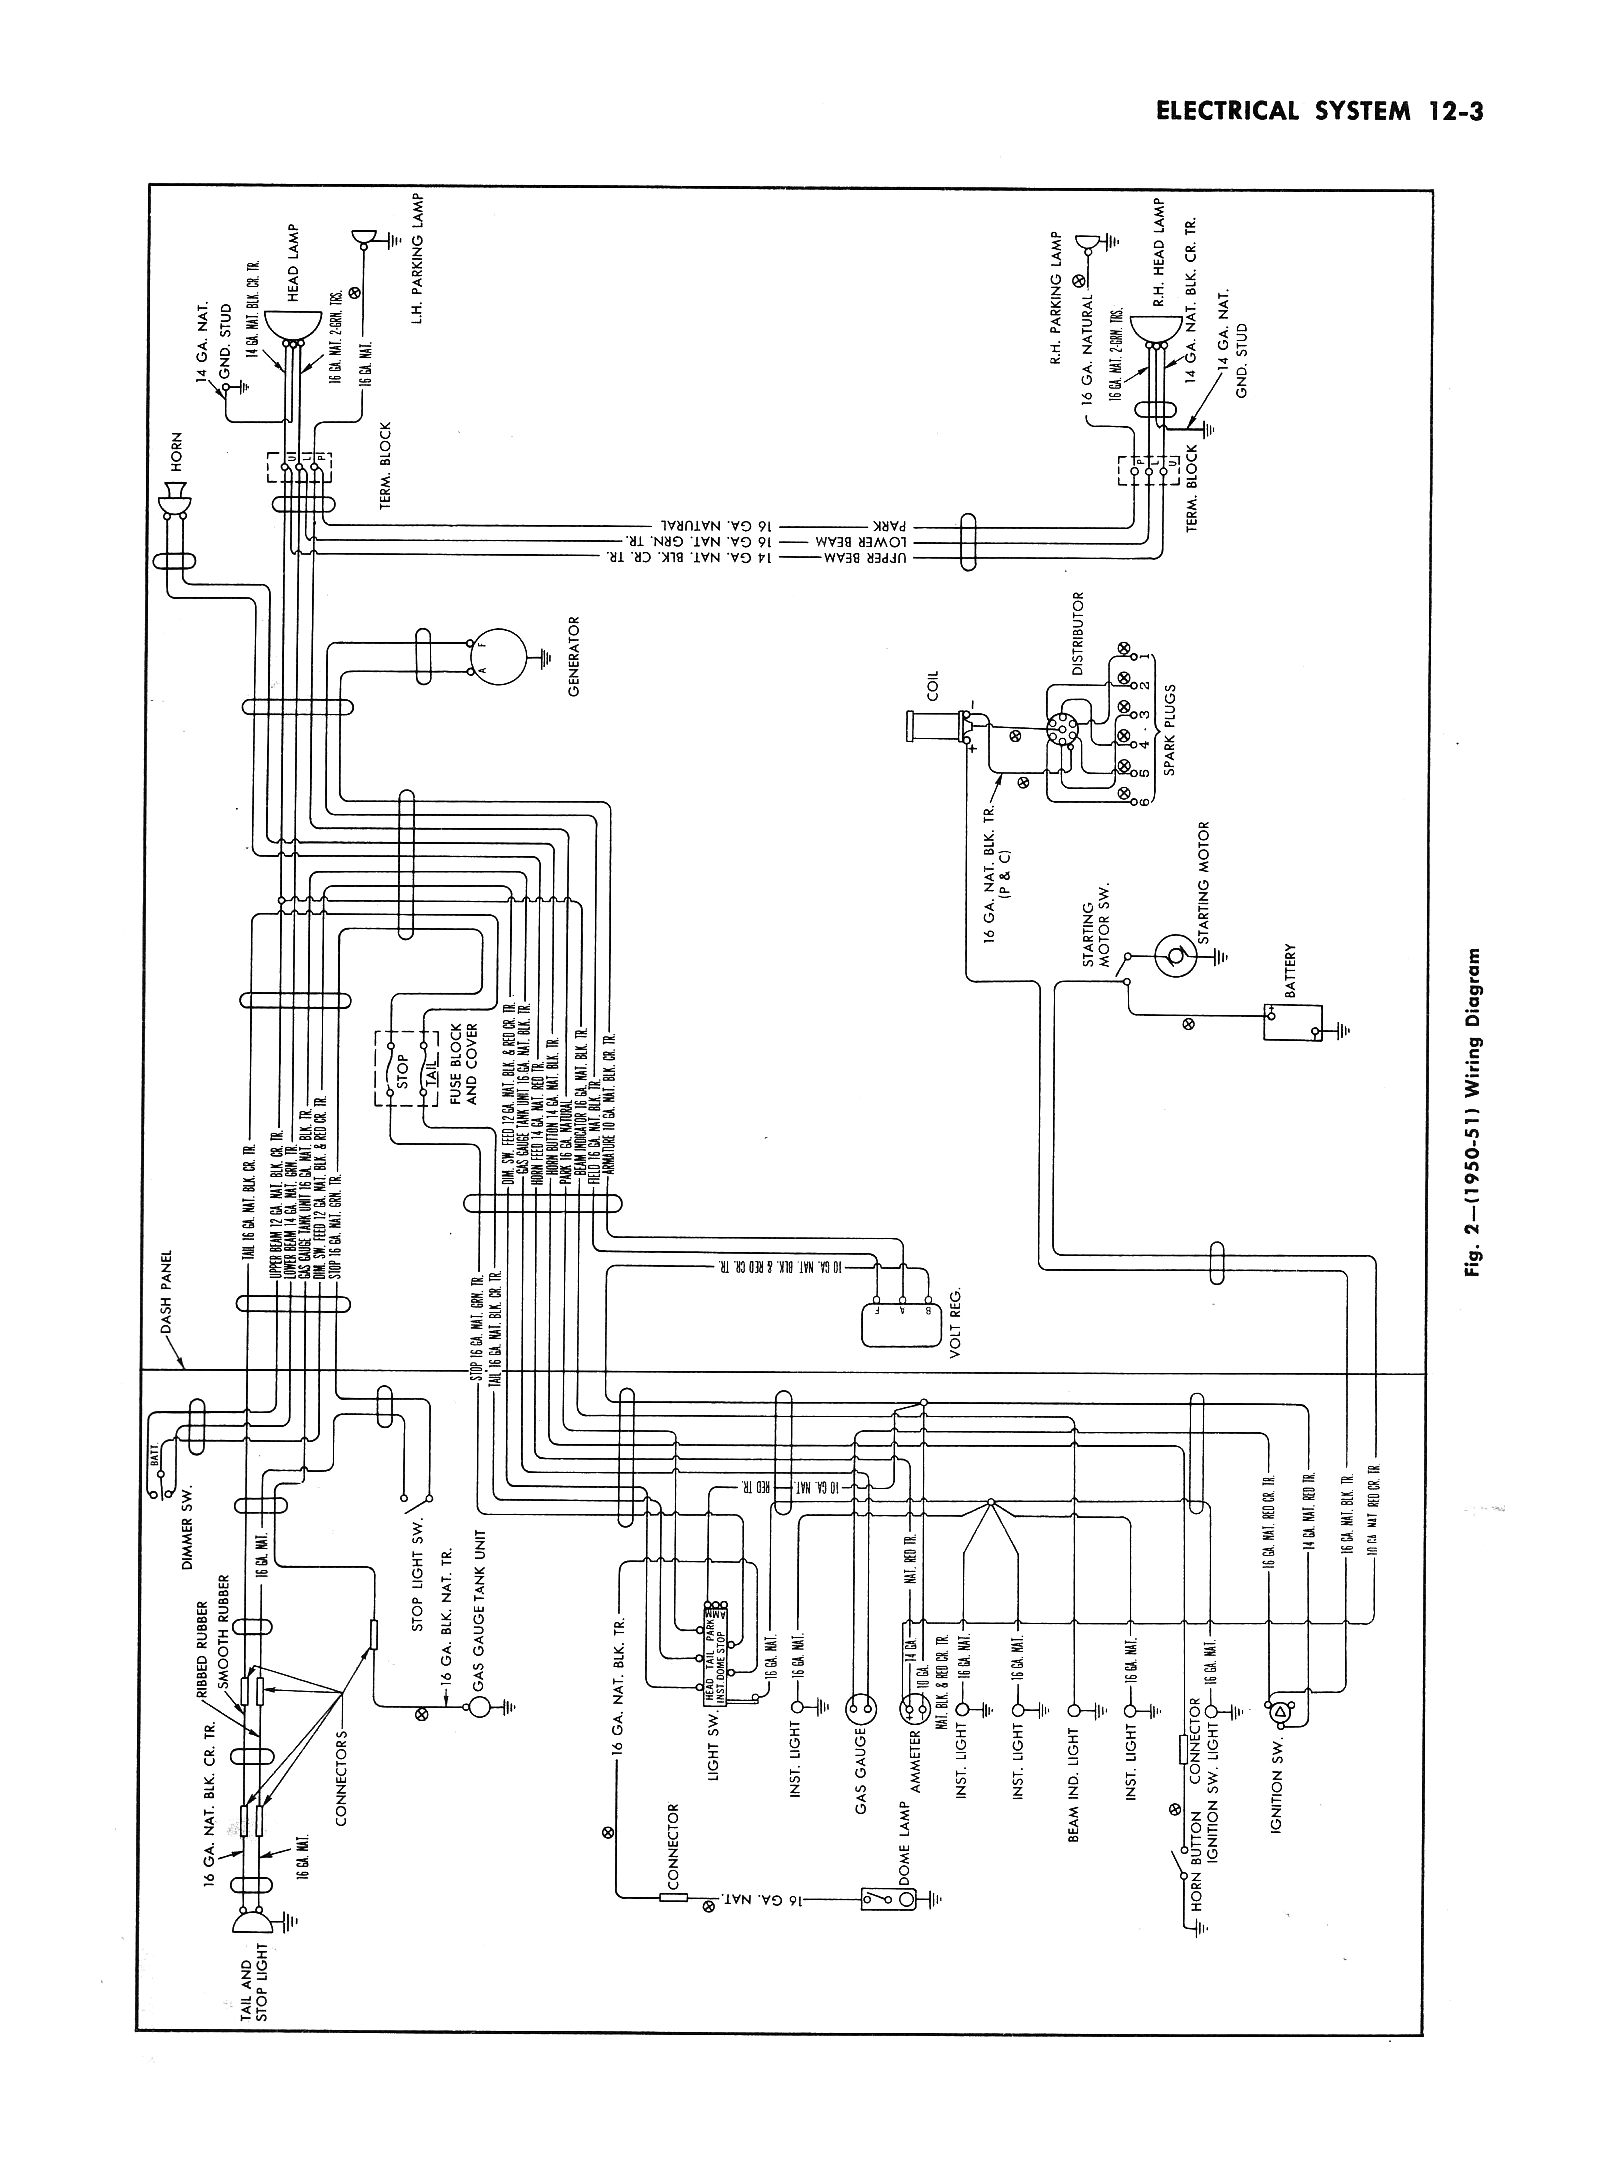 Chevy Wiring Diagrams GMC Fuse Box Diagrams Chevy Wiring Diagrams Color